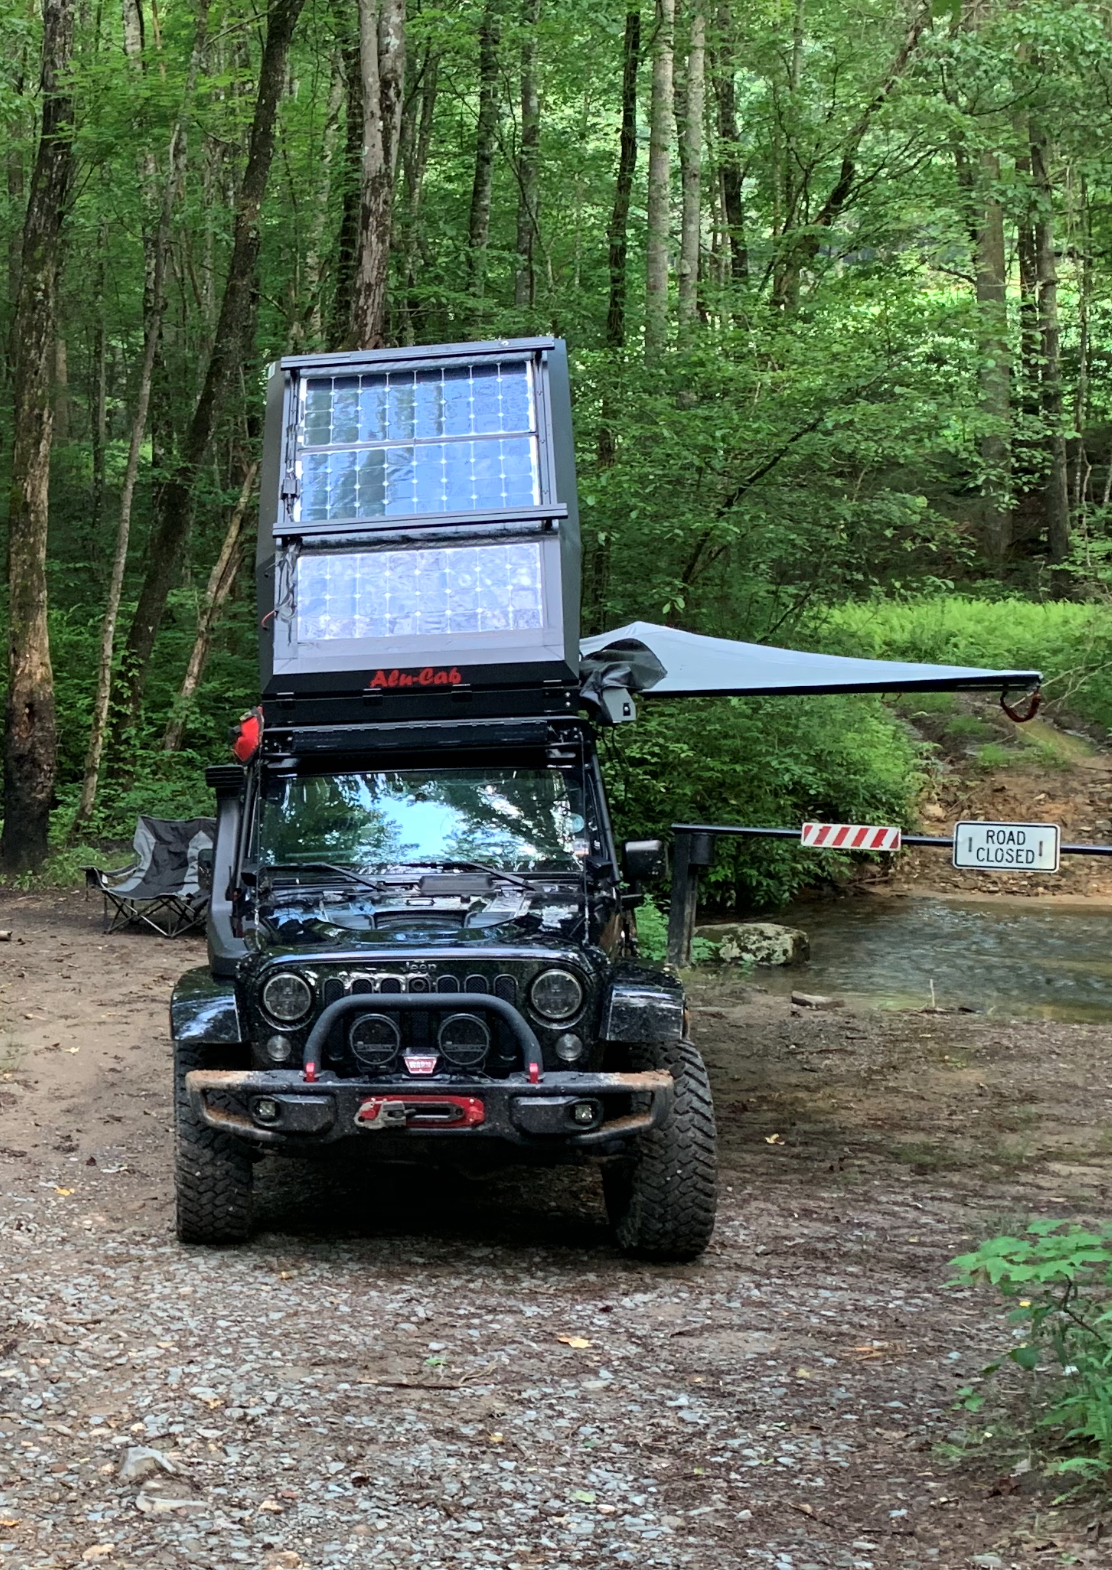 Allpowers solar array - 300W 6/18/19 - on the GA Traverse